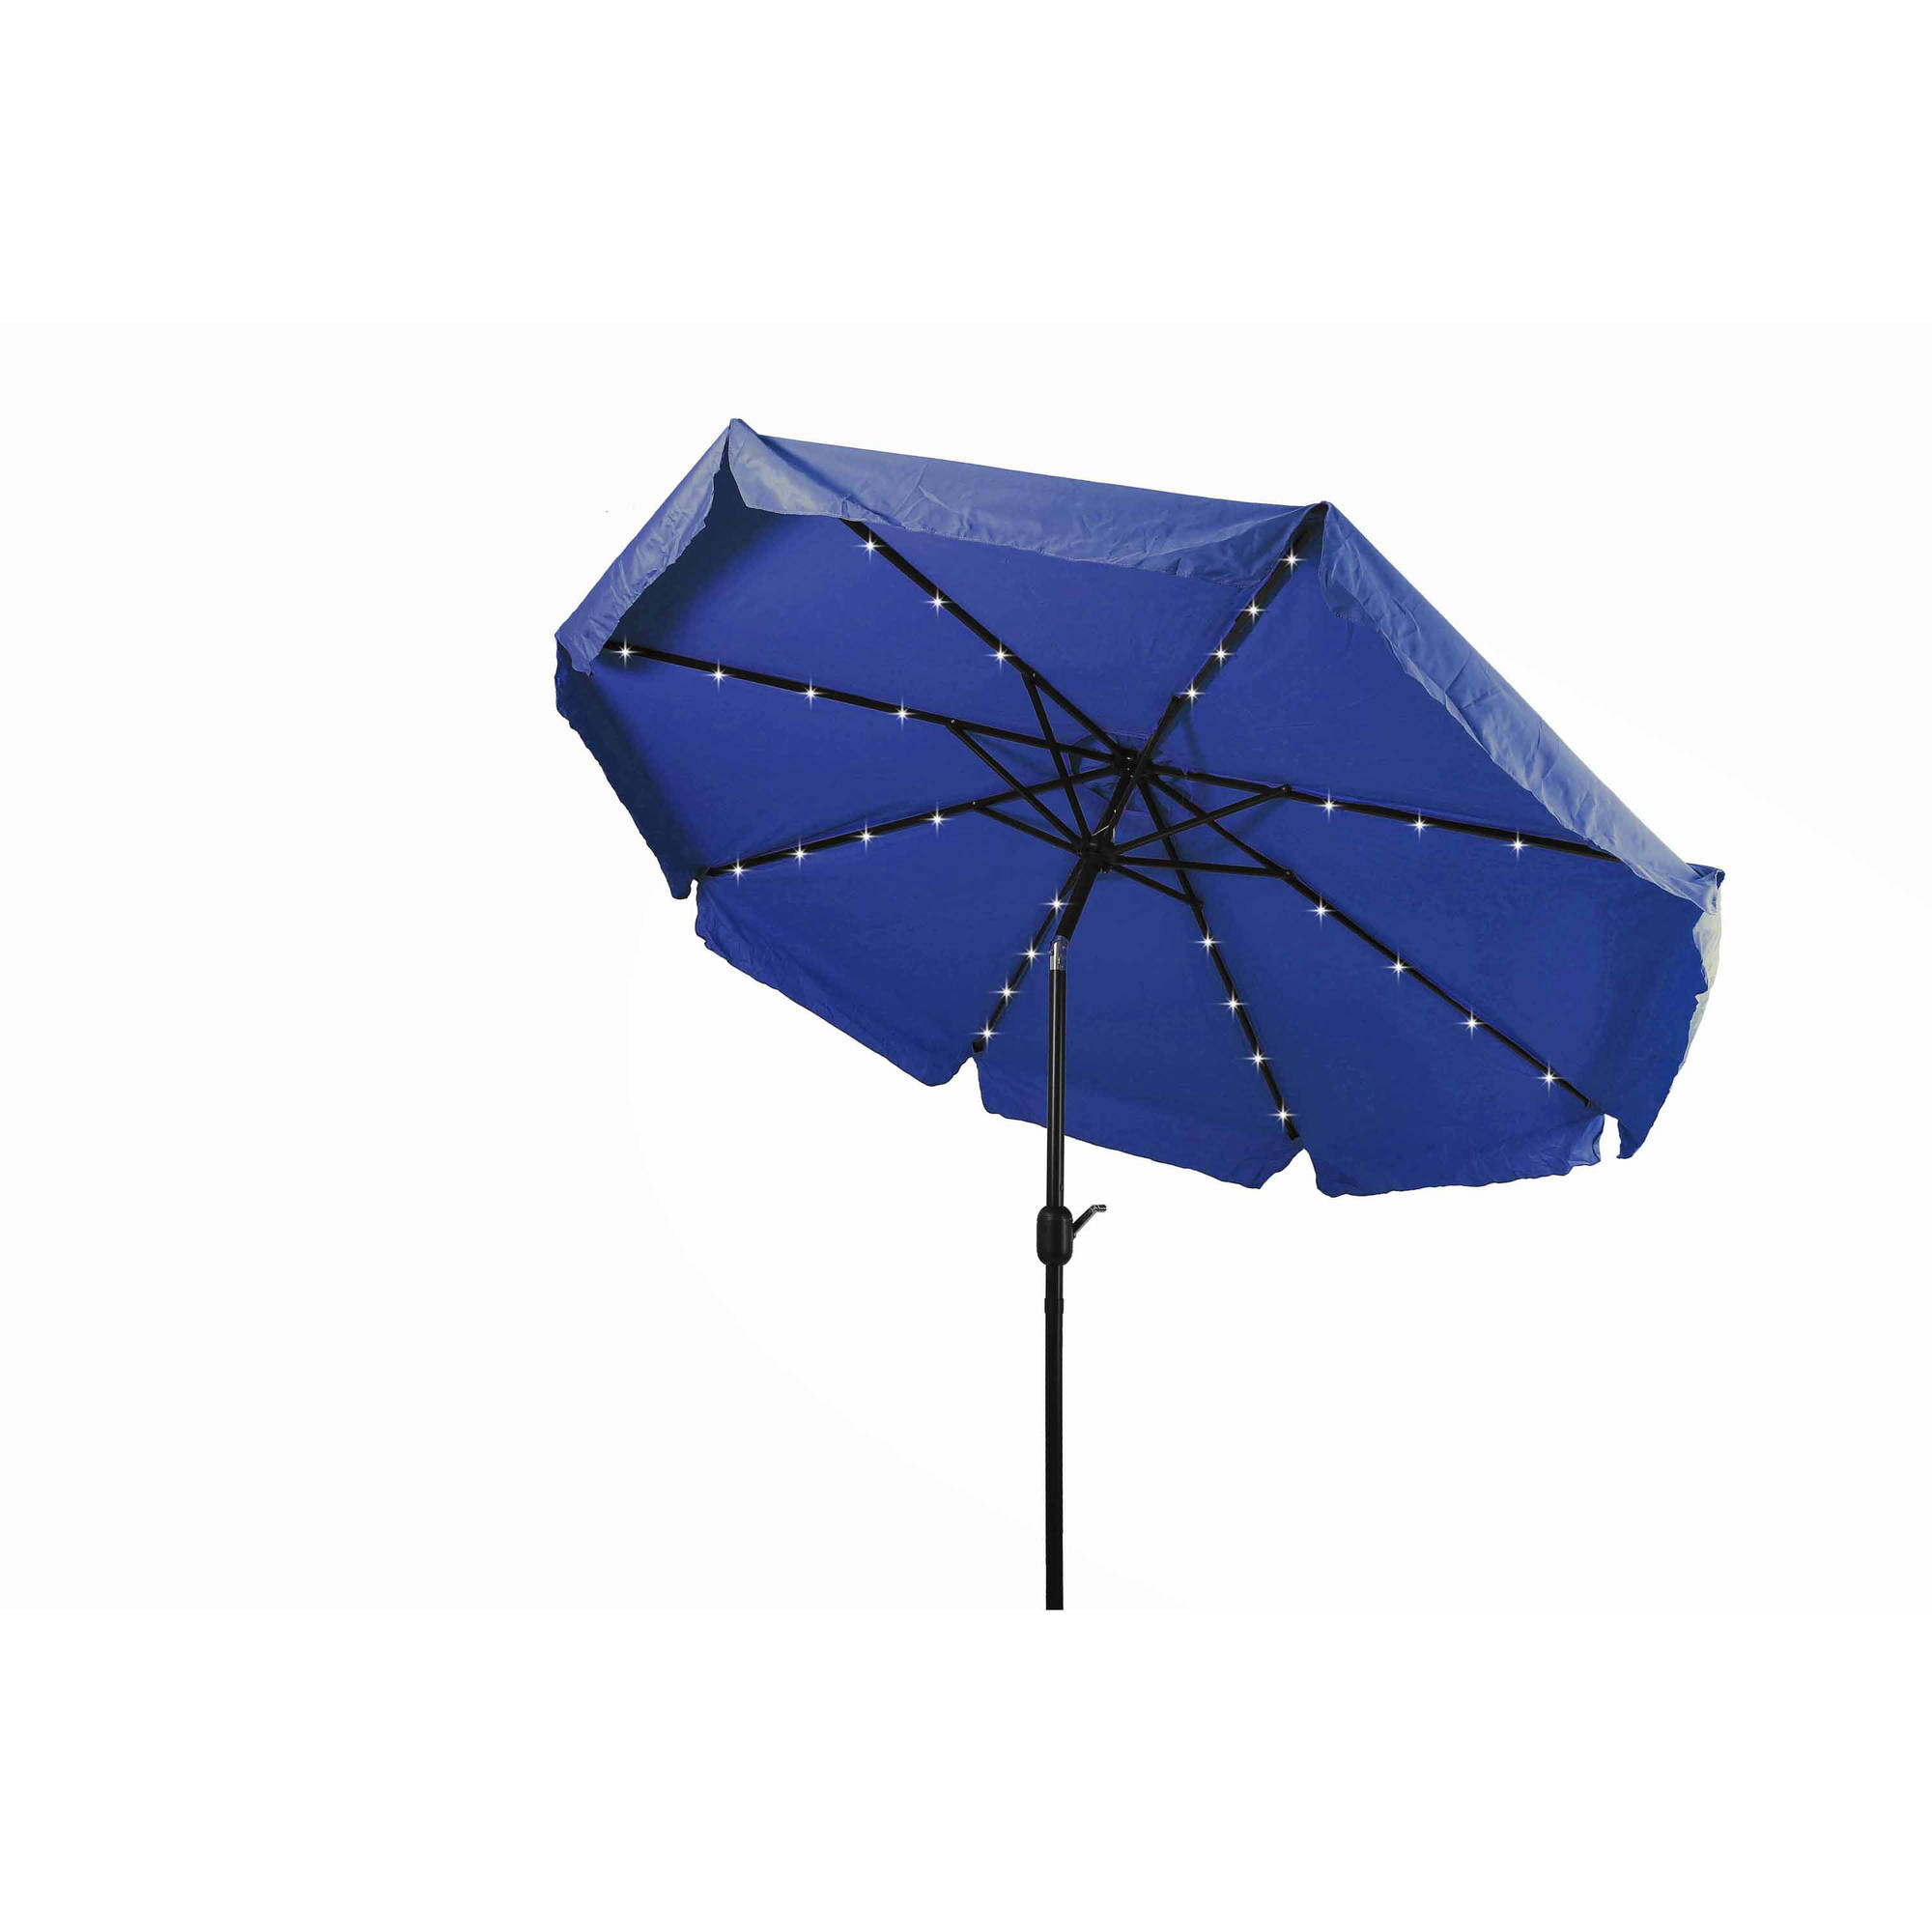 Best ideas about Patio Umbrellas Walmart . Save or Pin Deluxe Solar Powered LED Lighted Patio Umbrella 8 by Now.